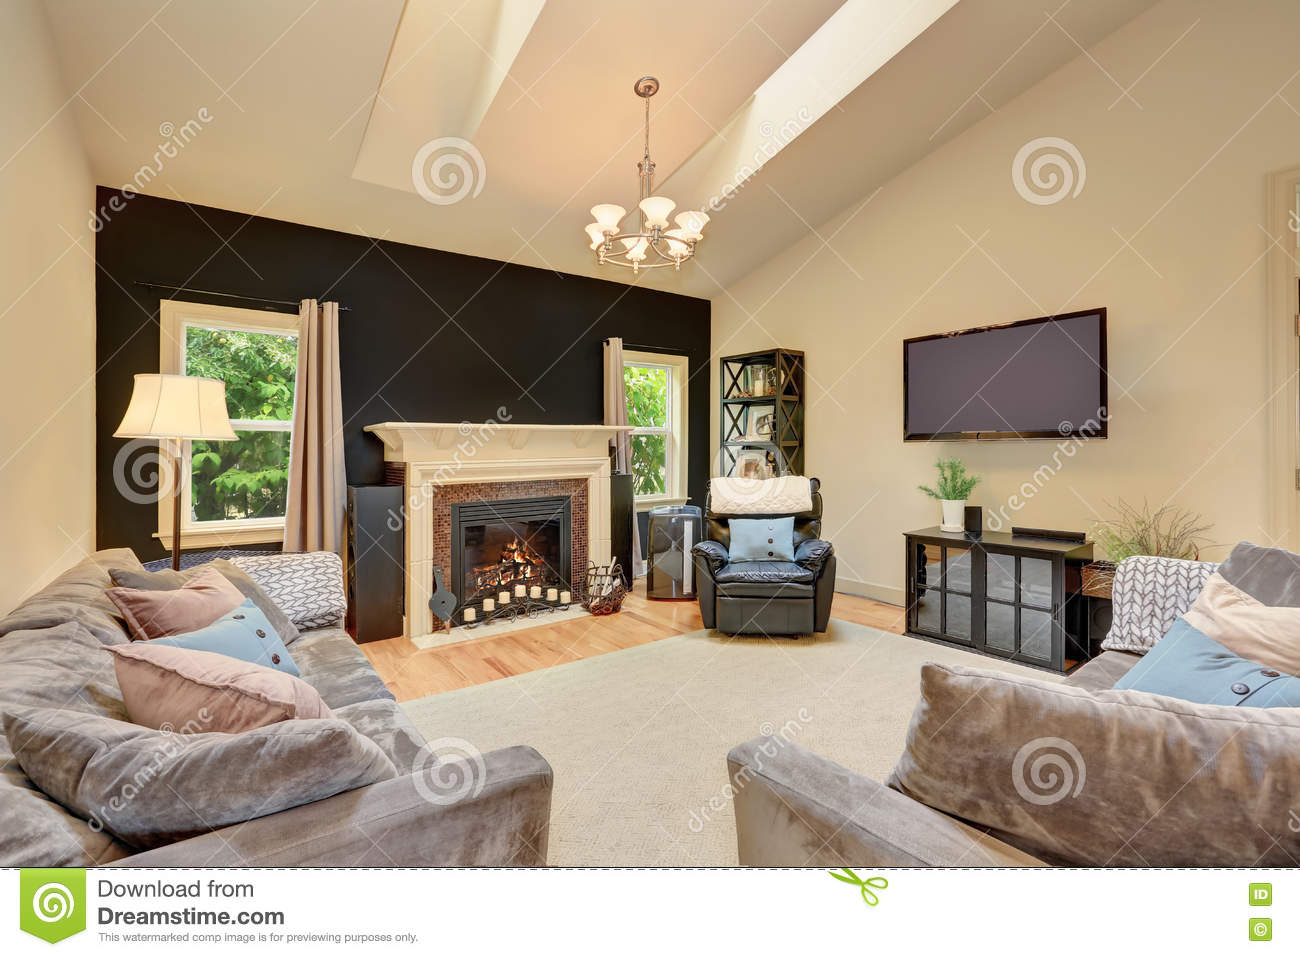 classic american family room with fireplace and sofas stock photo image of chair floor 75674014. Black Bedroom Furniture Sets. Home Design Ideas